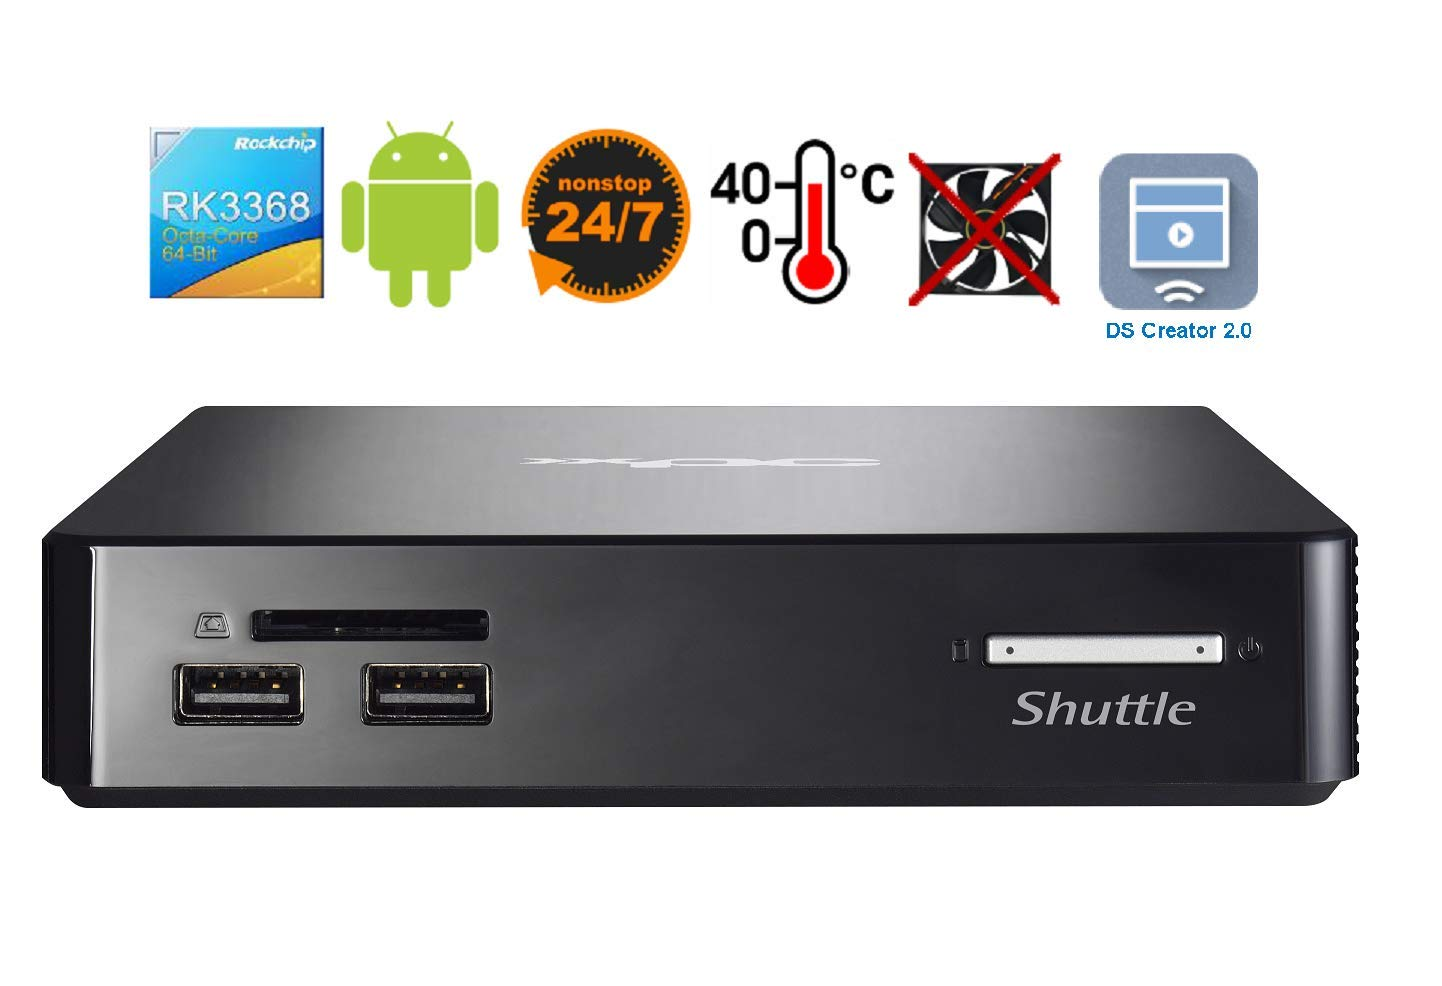 Shuttle XPC Nano NS02A Digital Signage Solution with Pre-Installed Digital Signage Software - DS Creator, 2GB DDR3L RAM, 16GB eMMC Storage, Android 8.1